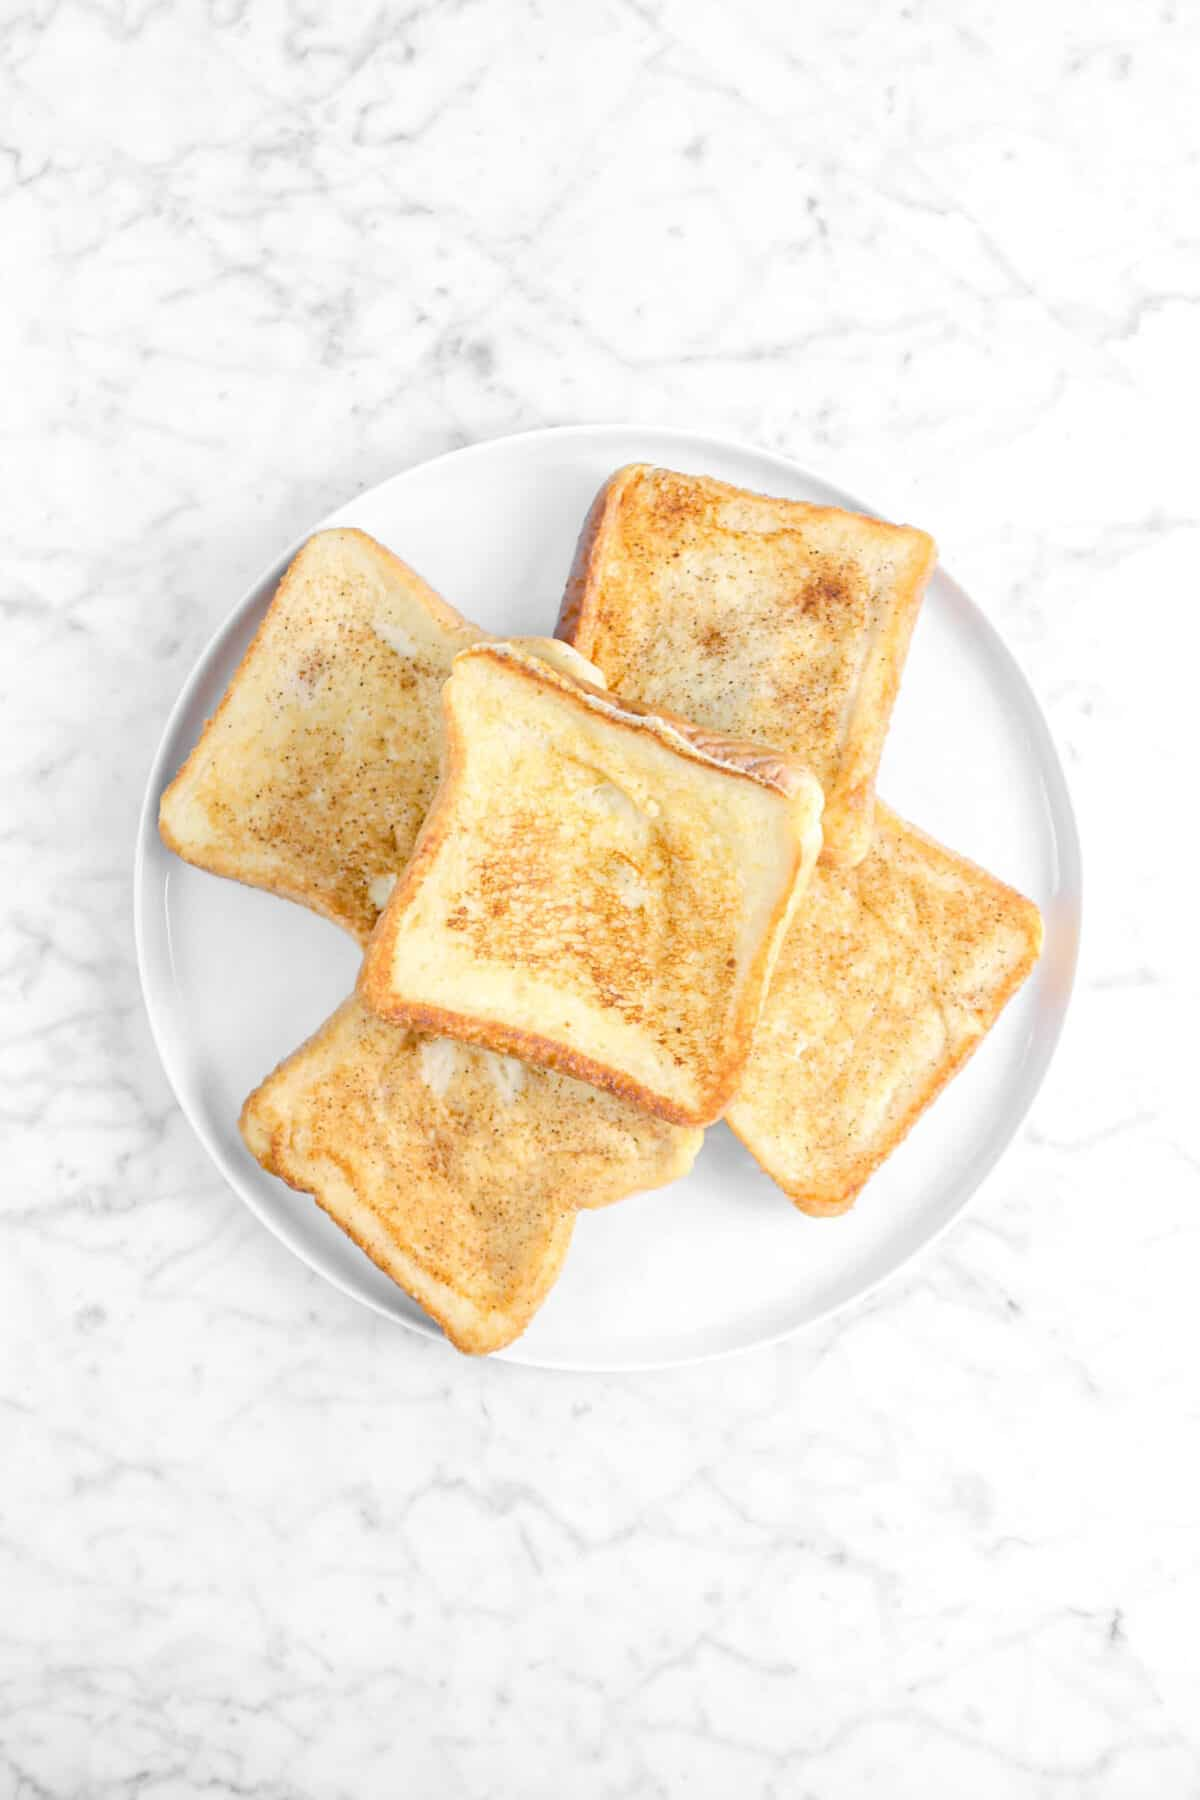 five pieces of french toast on white plate